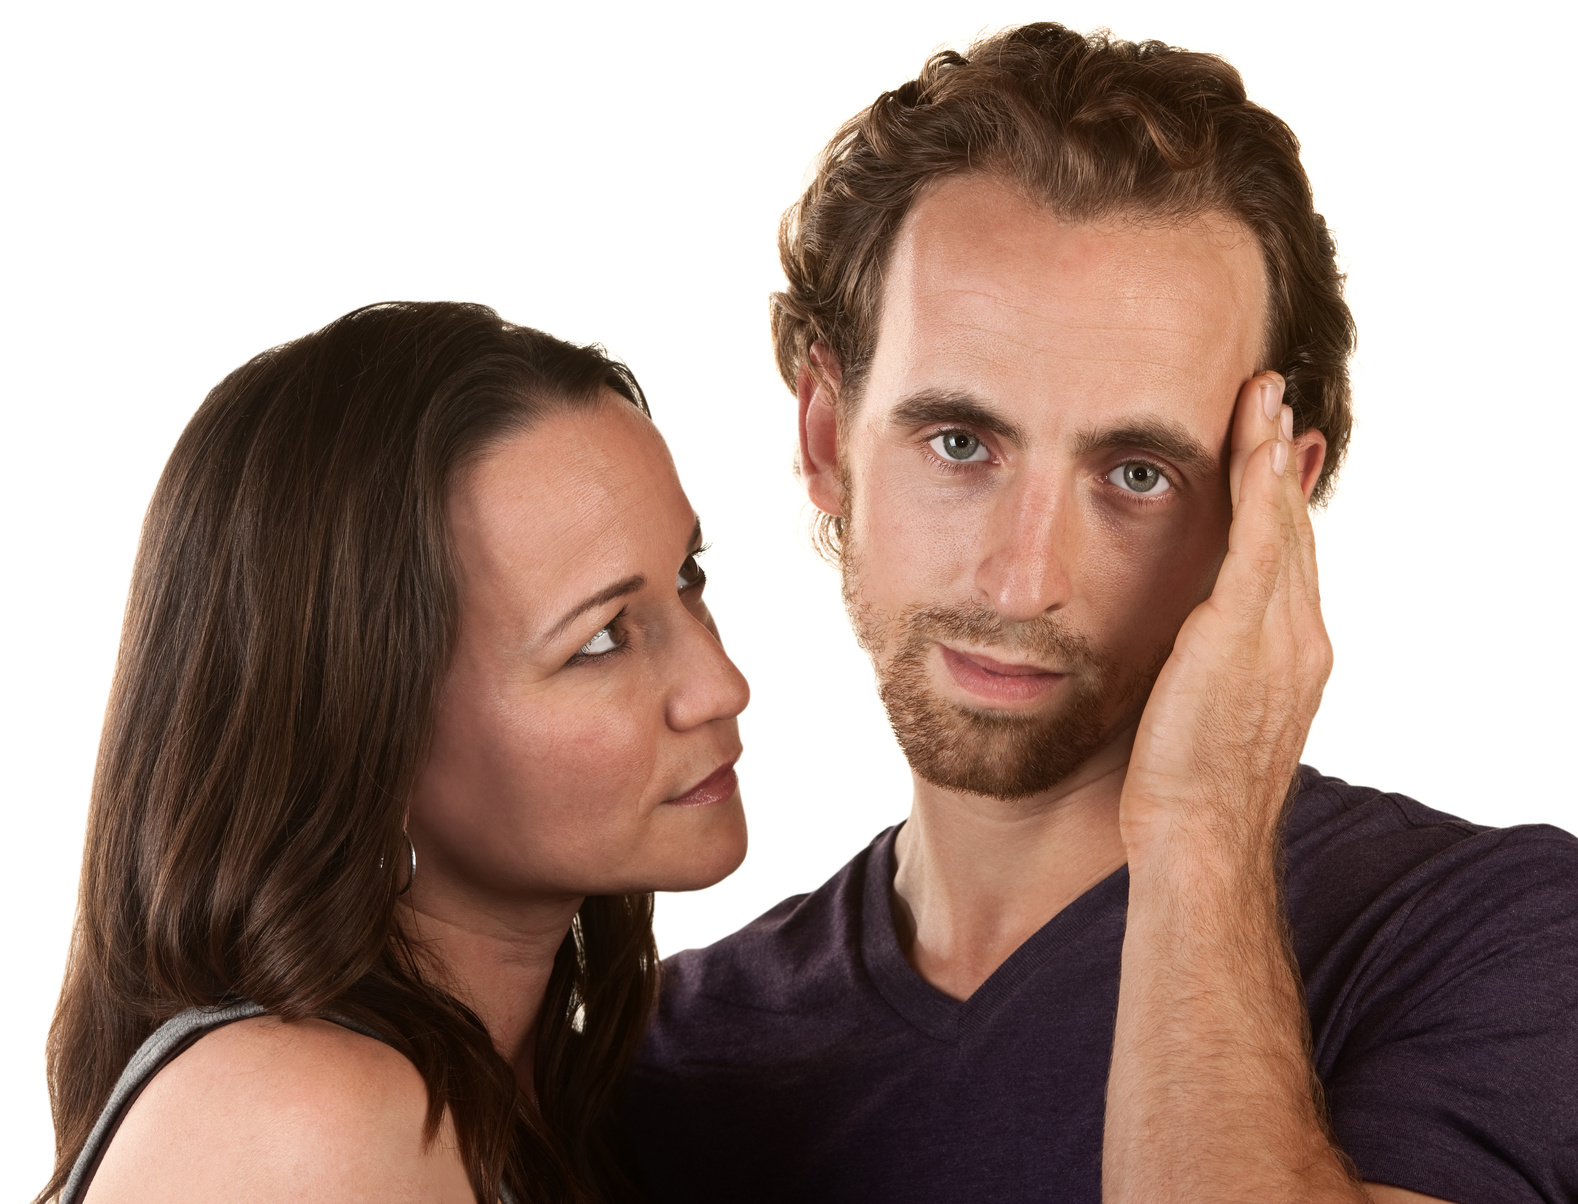 Sympathetic woman looking at man holding his head